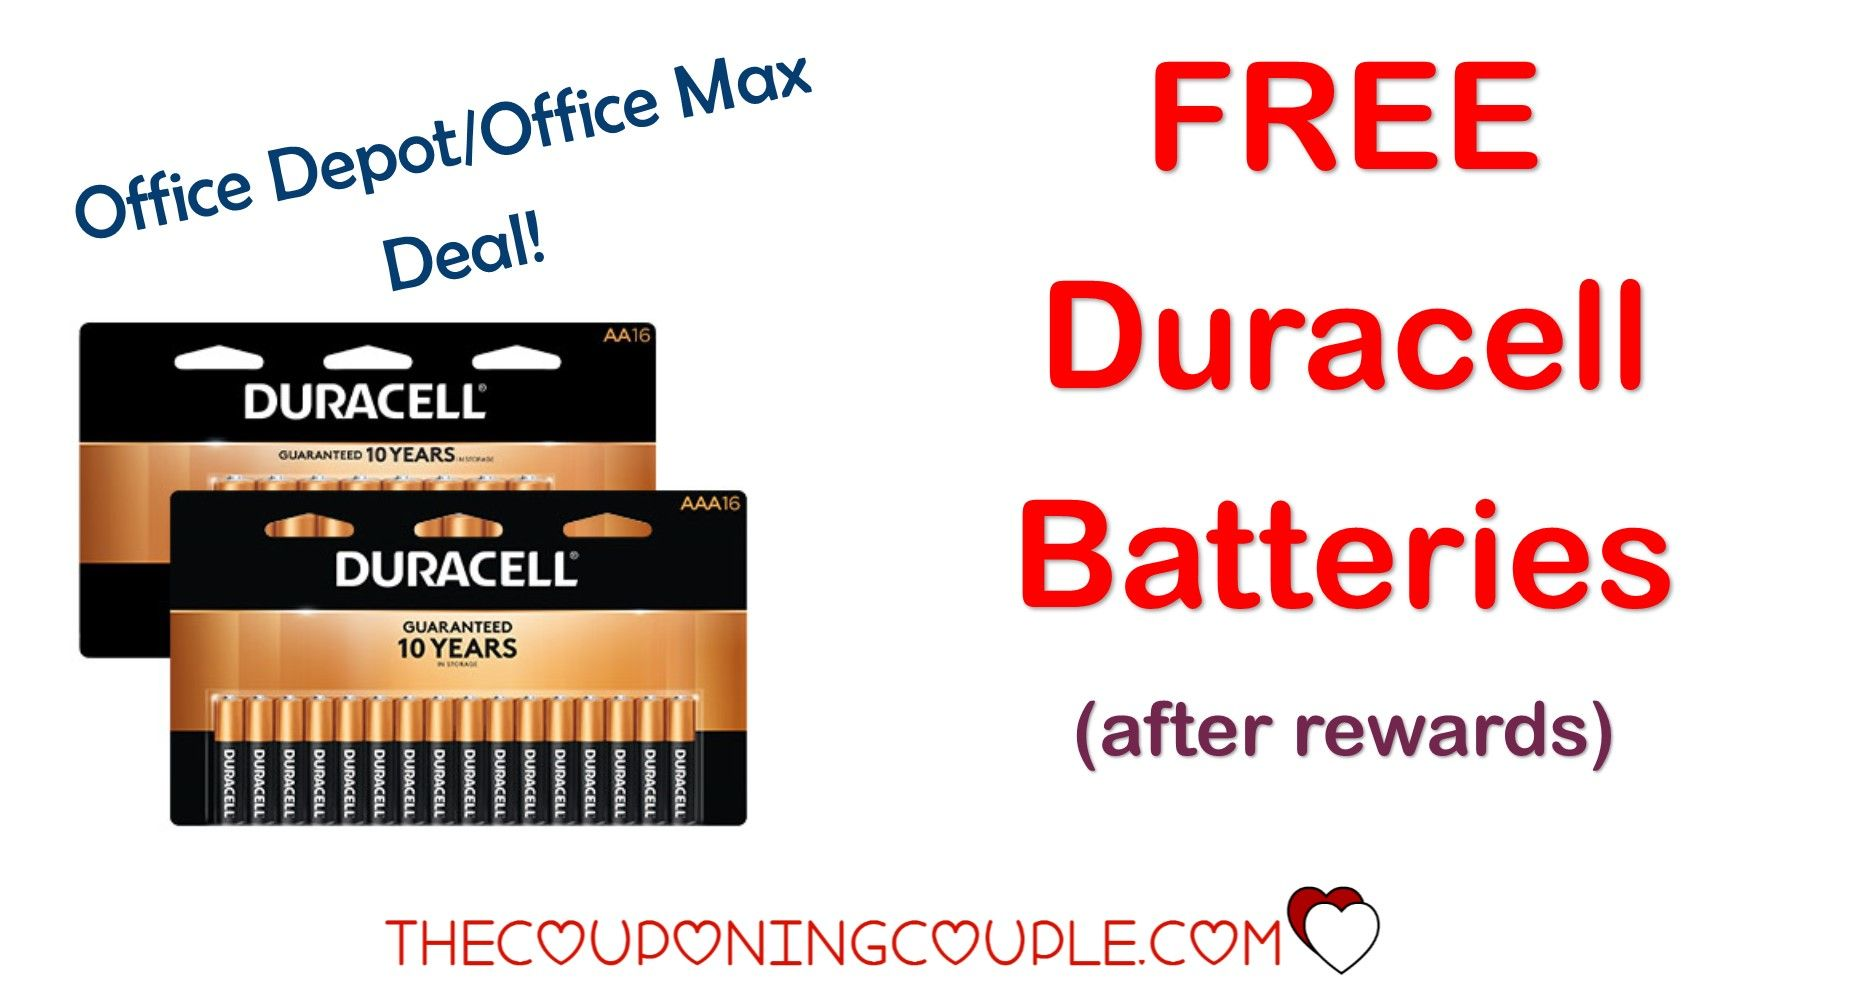 Office Depot Office Max Duracell Batteries FREE after